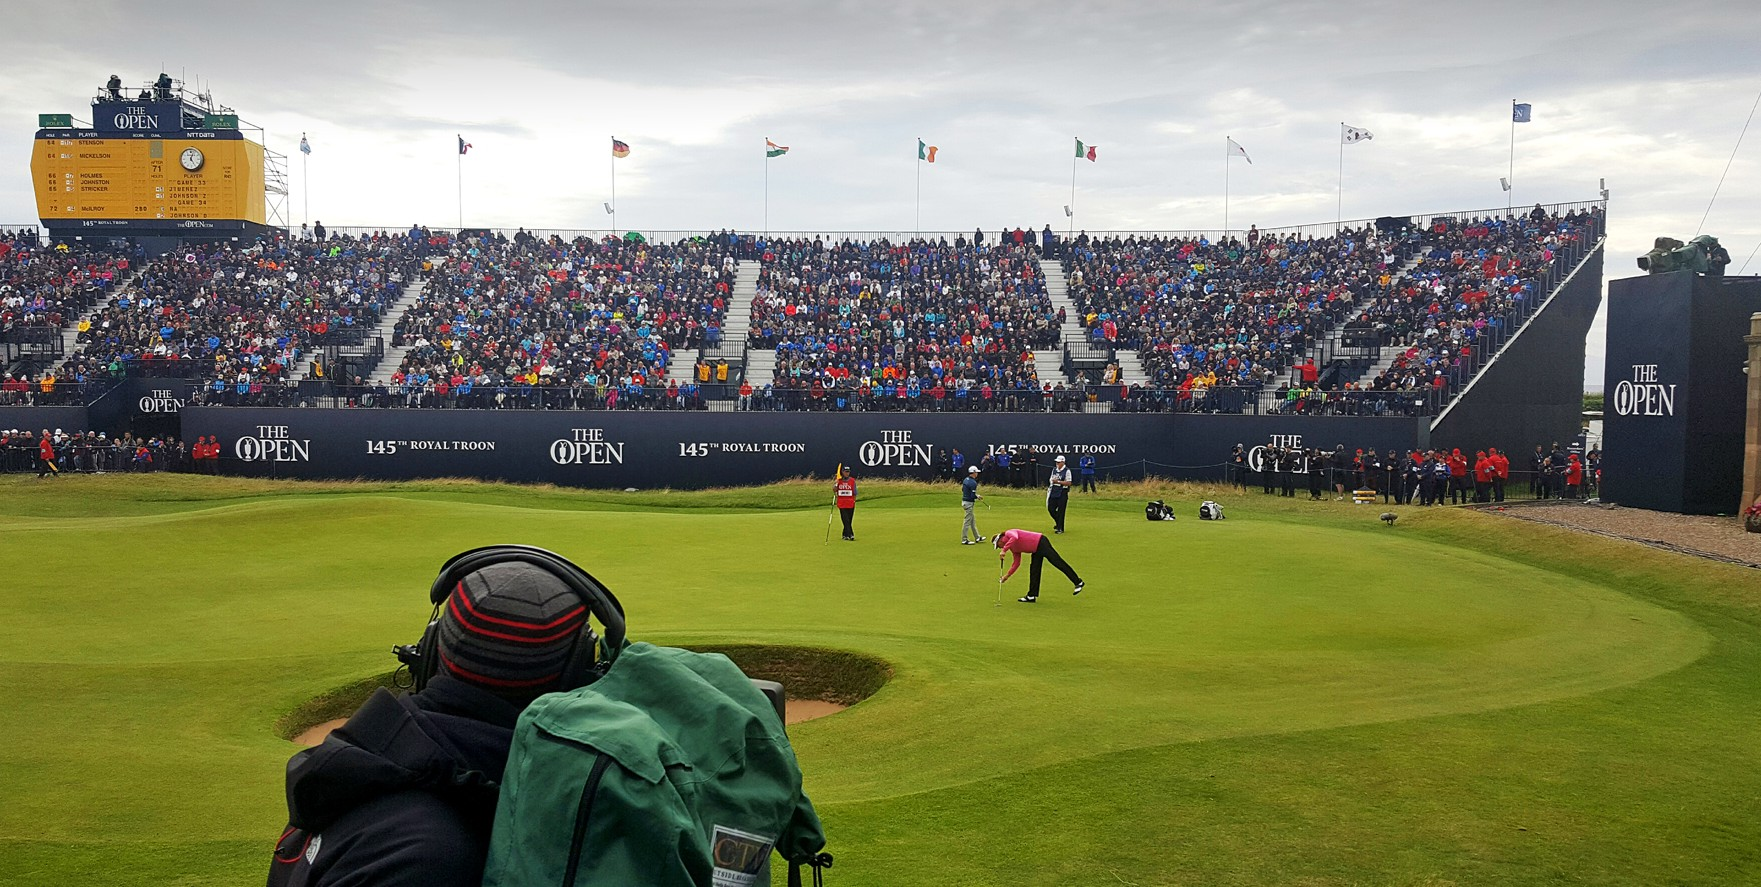 Live camera at The Open Championship 2016, Royal Troon (CTV)